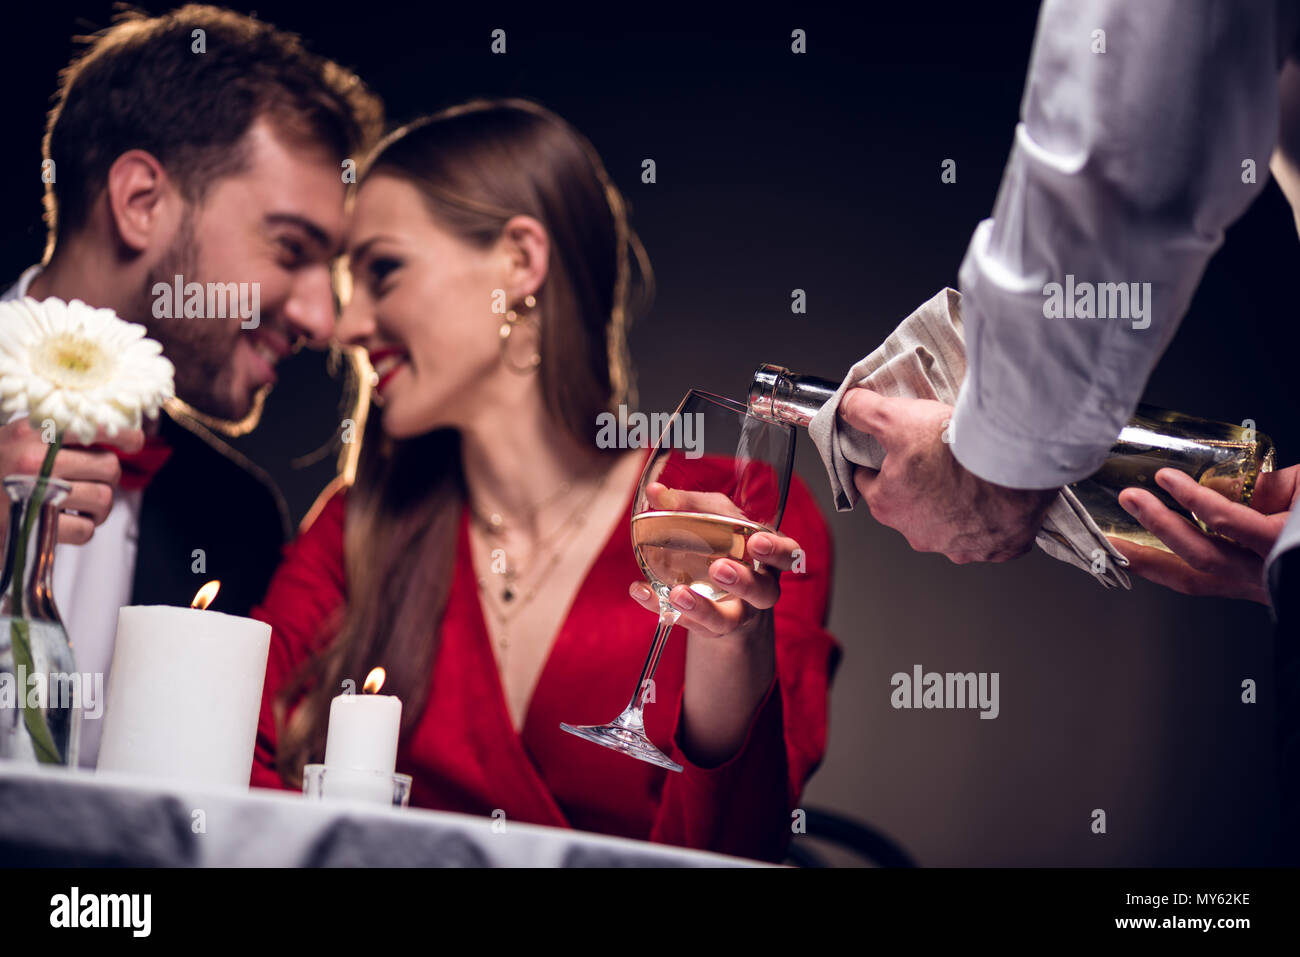 waiter pouring wine while smiling couple having romantic date in restaurant on valentines day - Stock Image